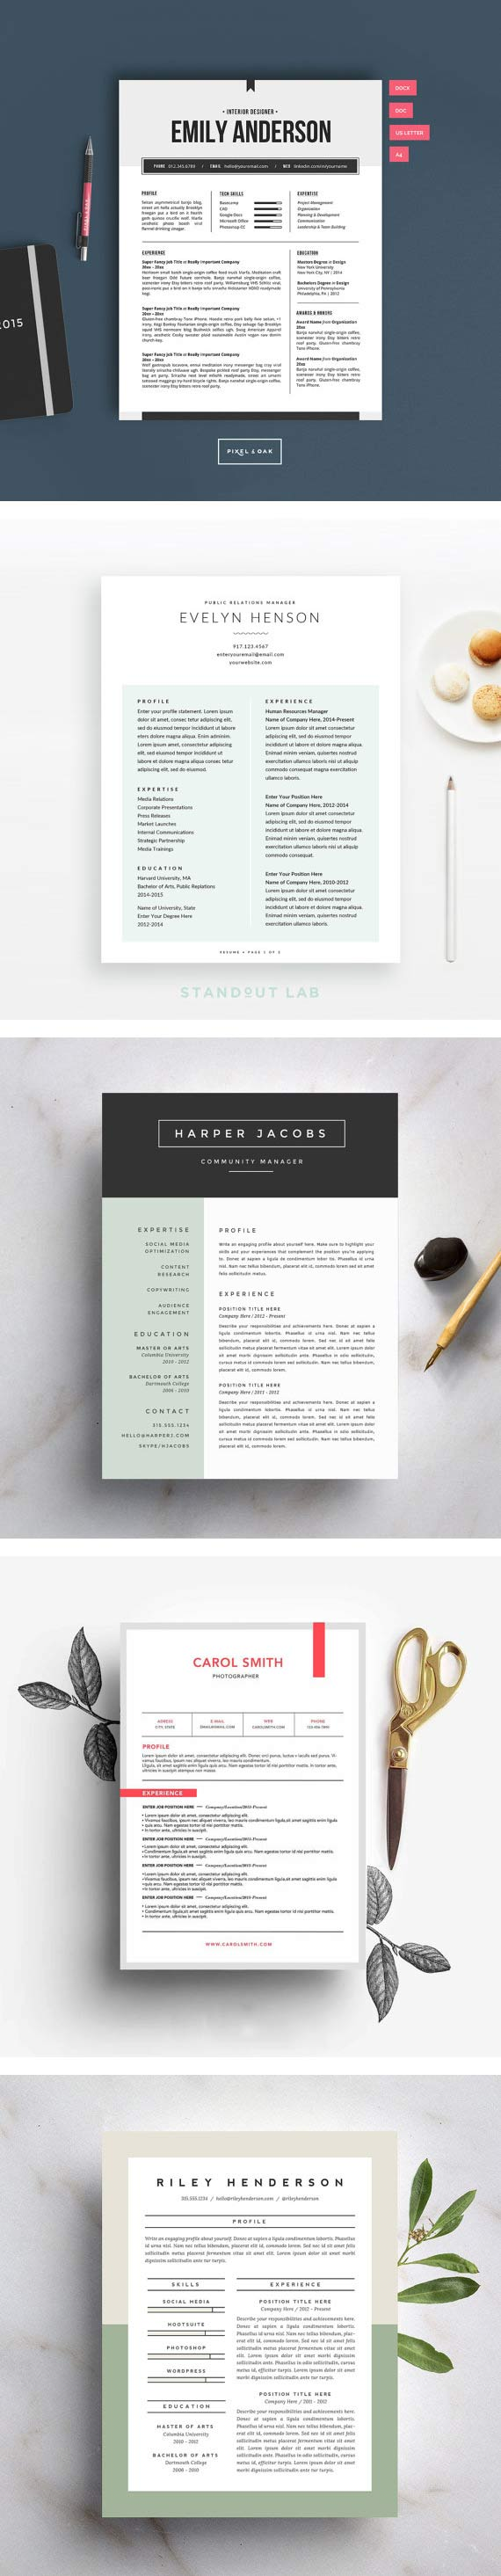 15 Beautiful Resume Templates You Can Buy on Etsy